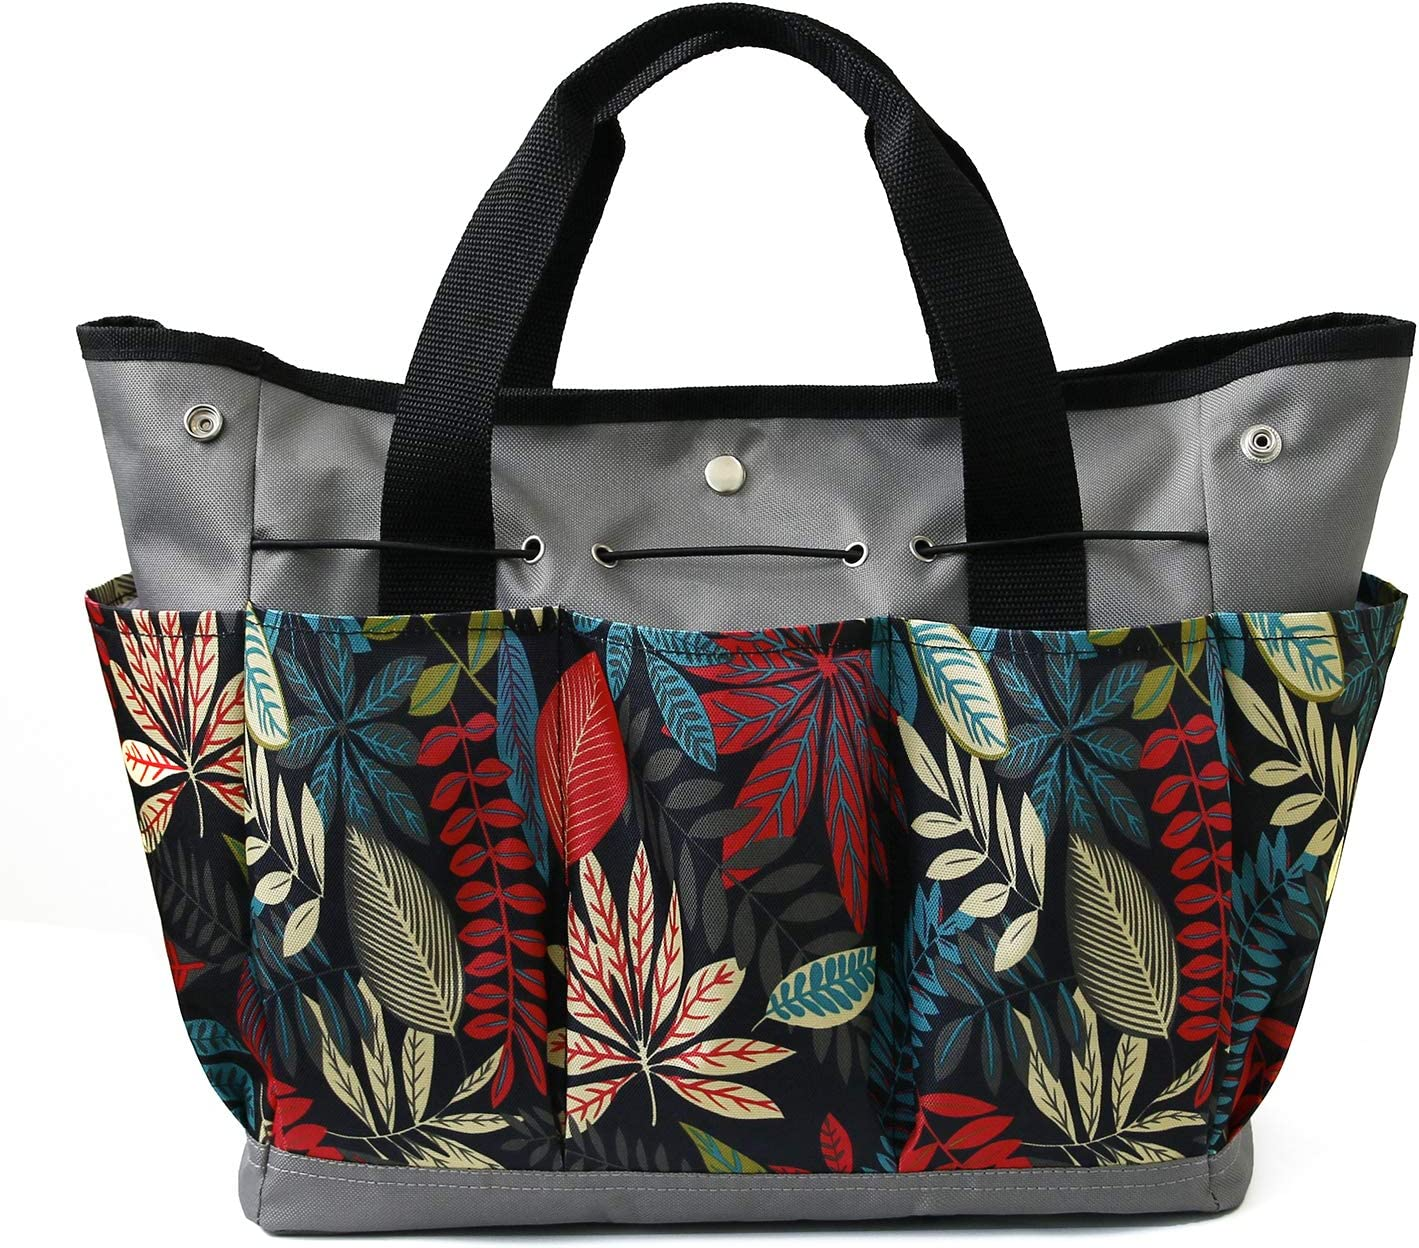 Selling and selling Garden Houston Mall Tool Bag Gardening Organizer T Tote